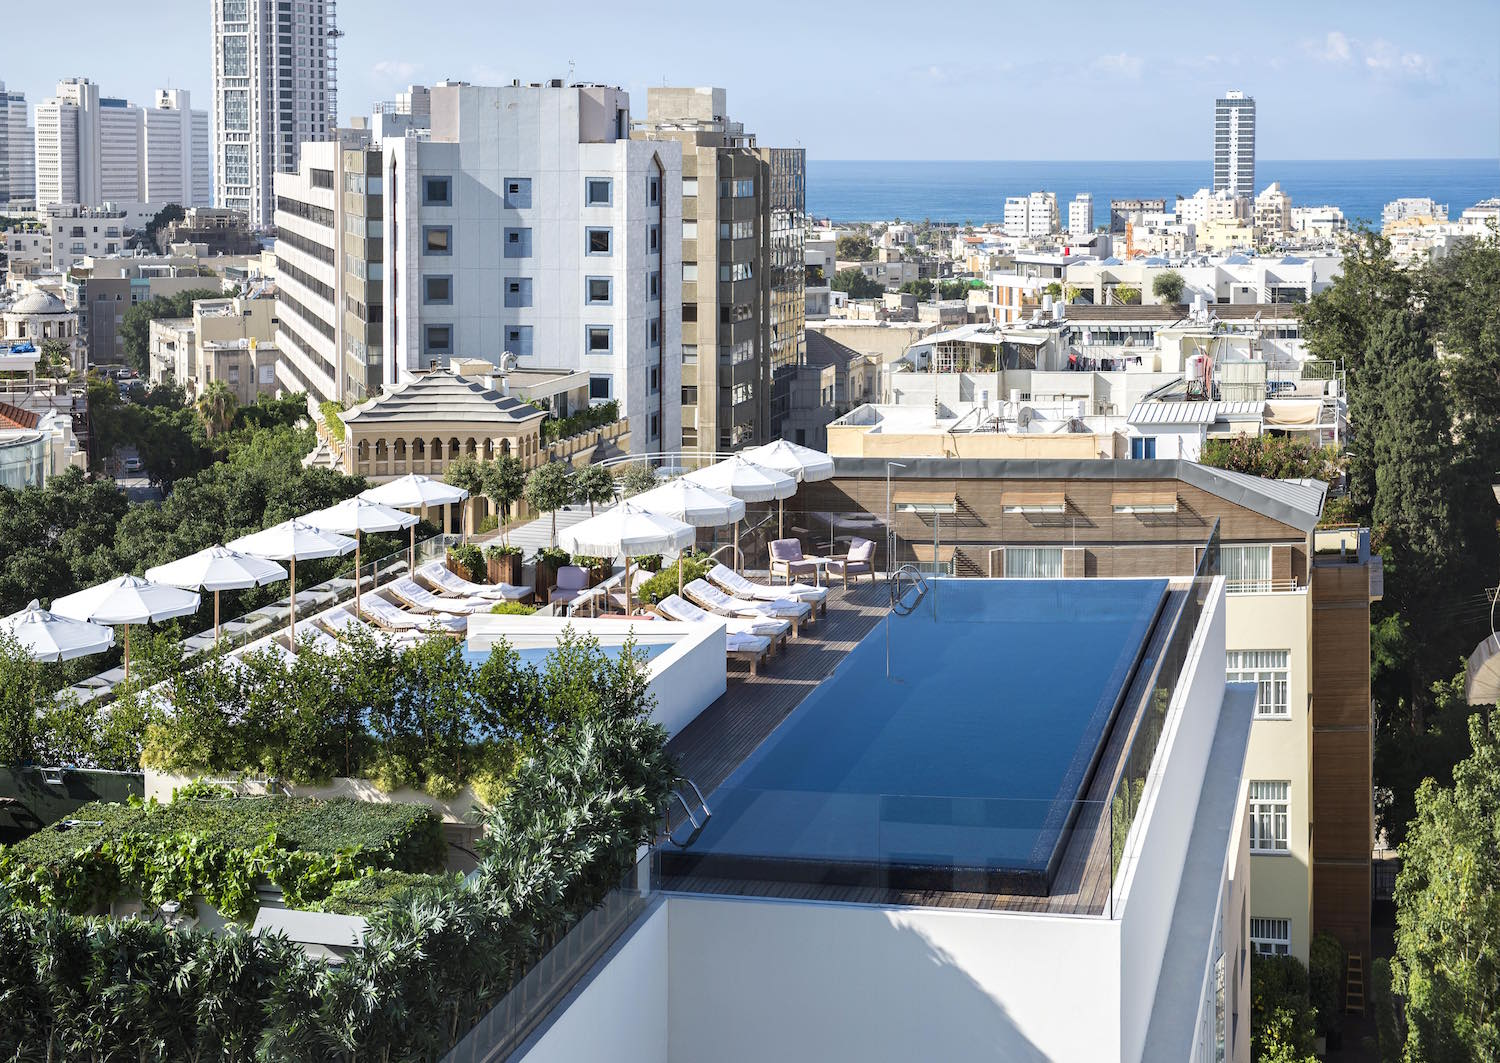 Panoramic Tel Aviv views from the rooftop pool at The Norman.